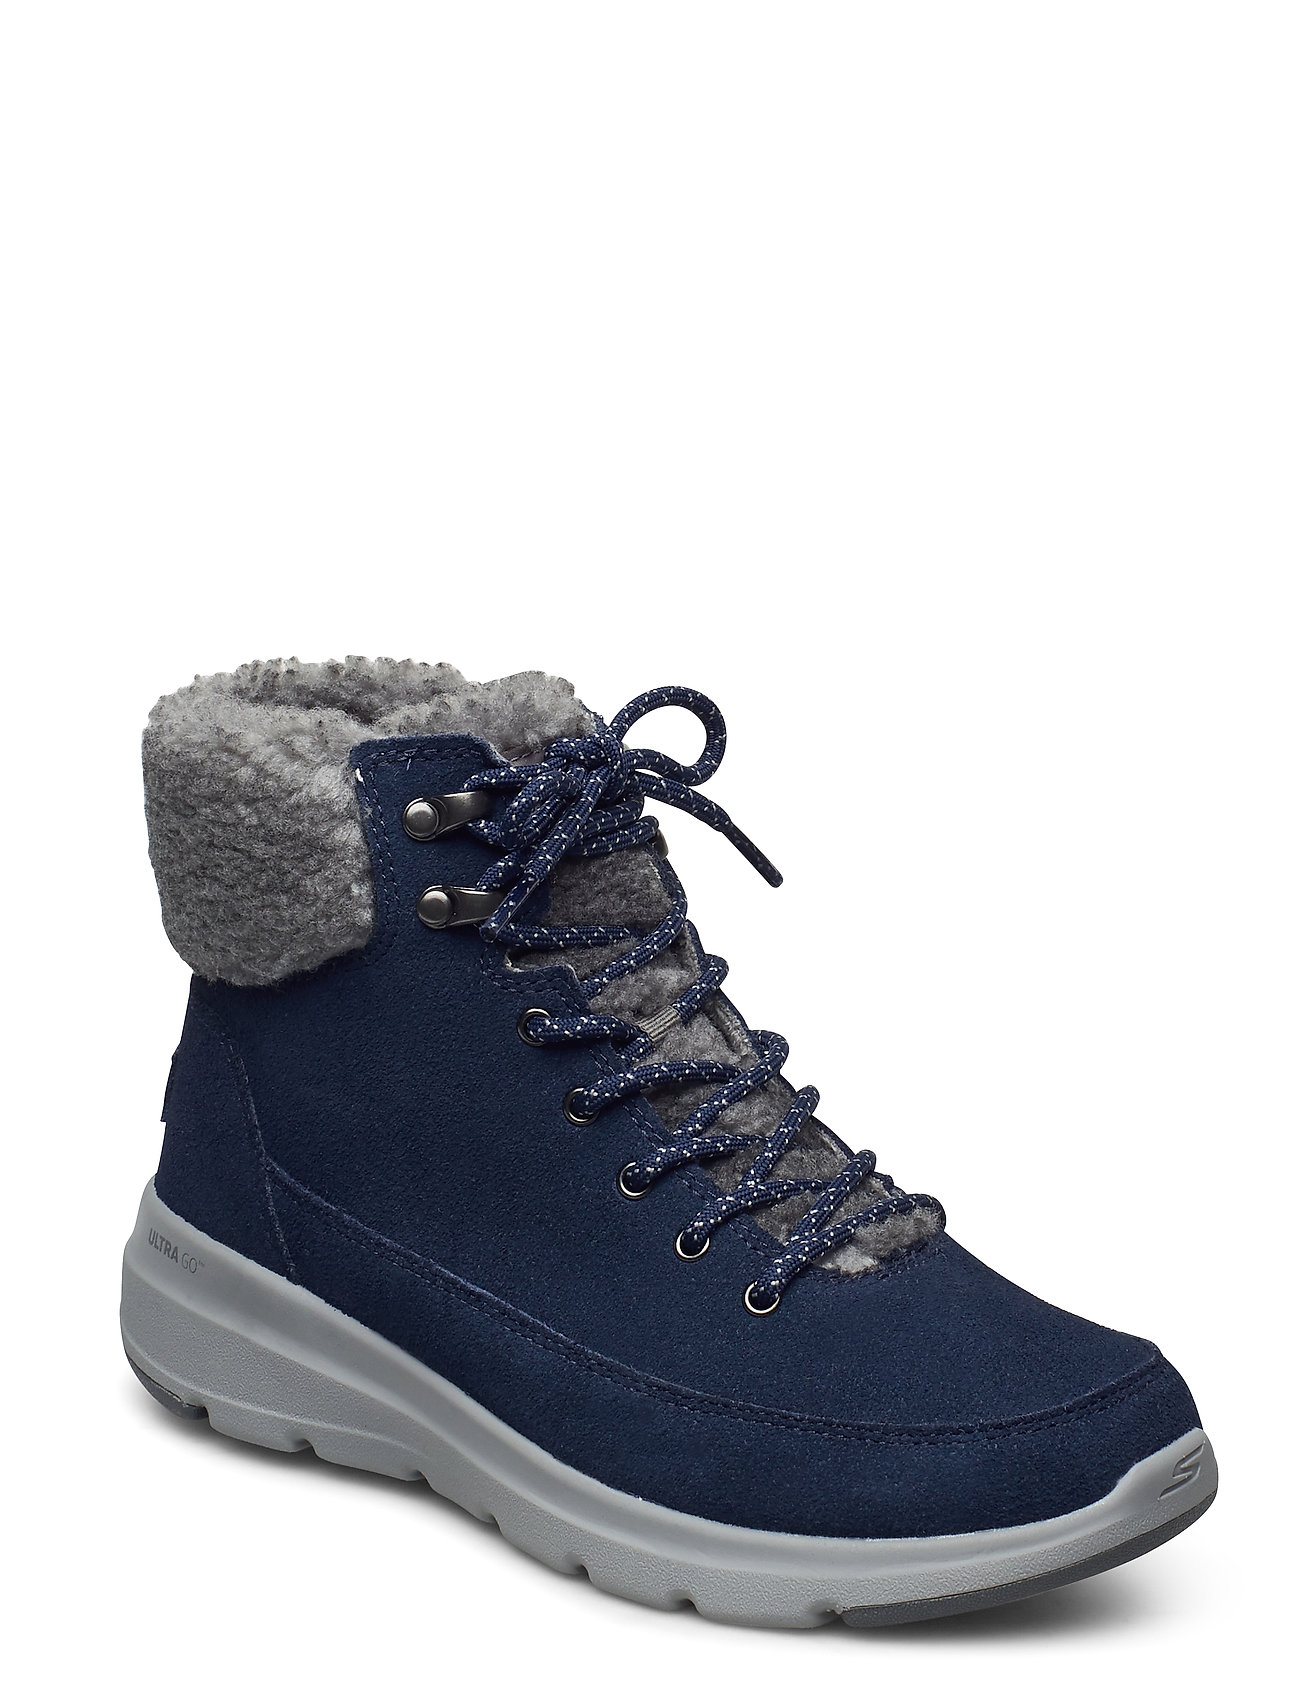 Image of Womens On The Go Glacial Ultra - Woodlands Shoes Boots Ankle Boots Ankle Boot - Flat Blå Skechers (3441399923)